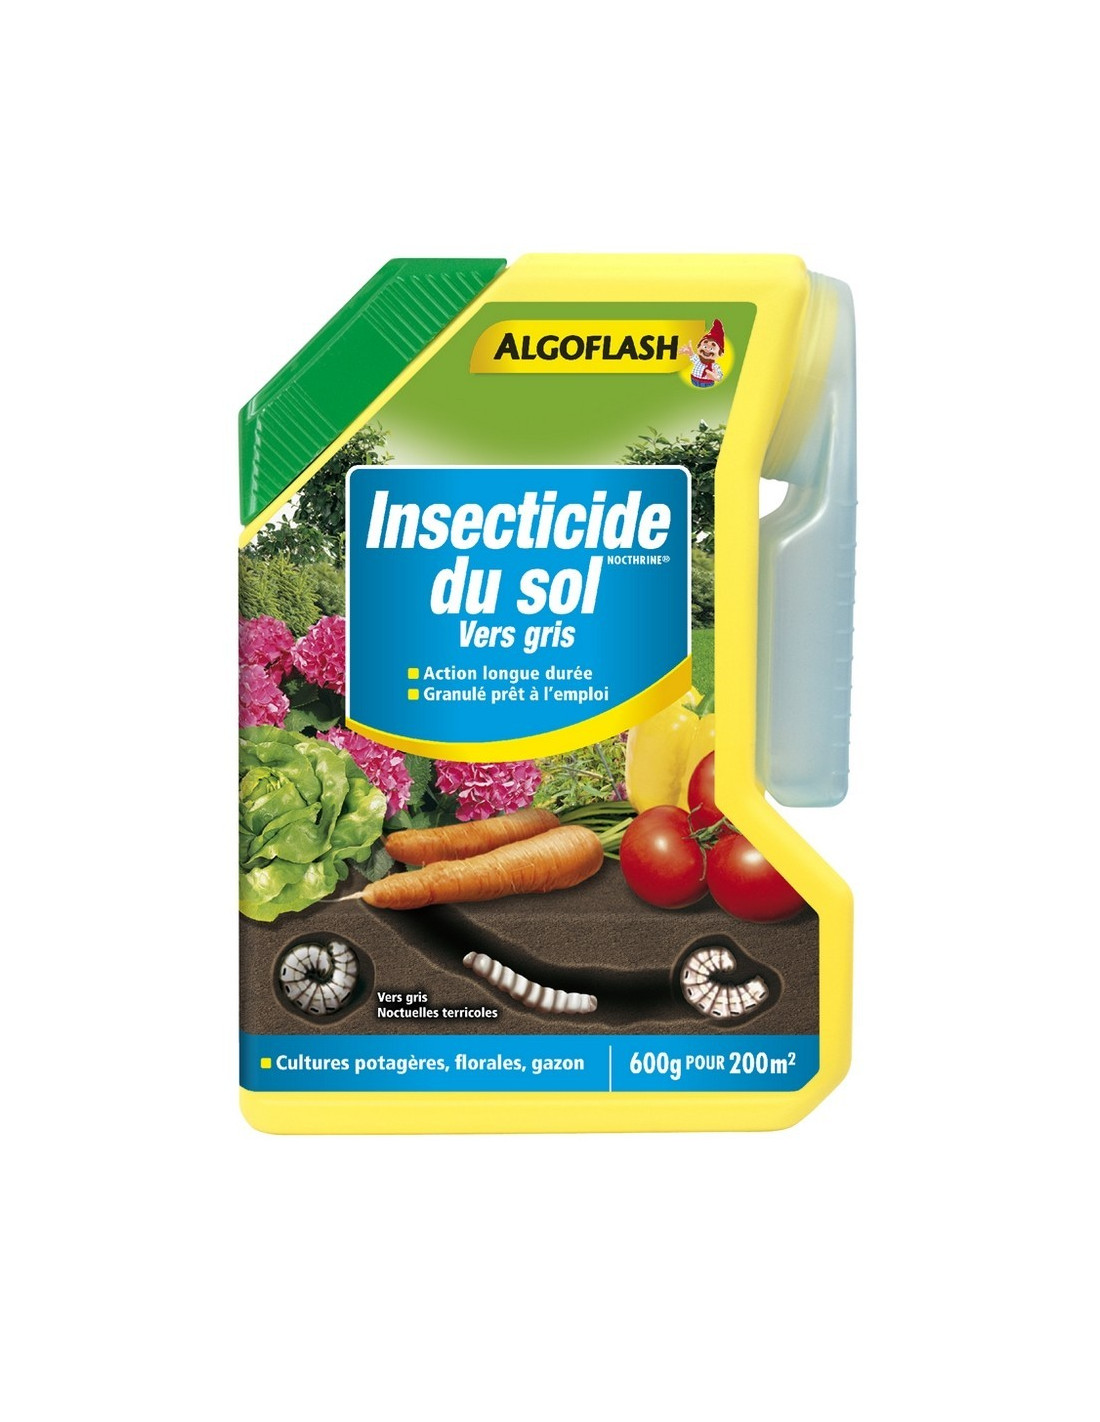 ALGOFLASH Insecticide du sol 9g